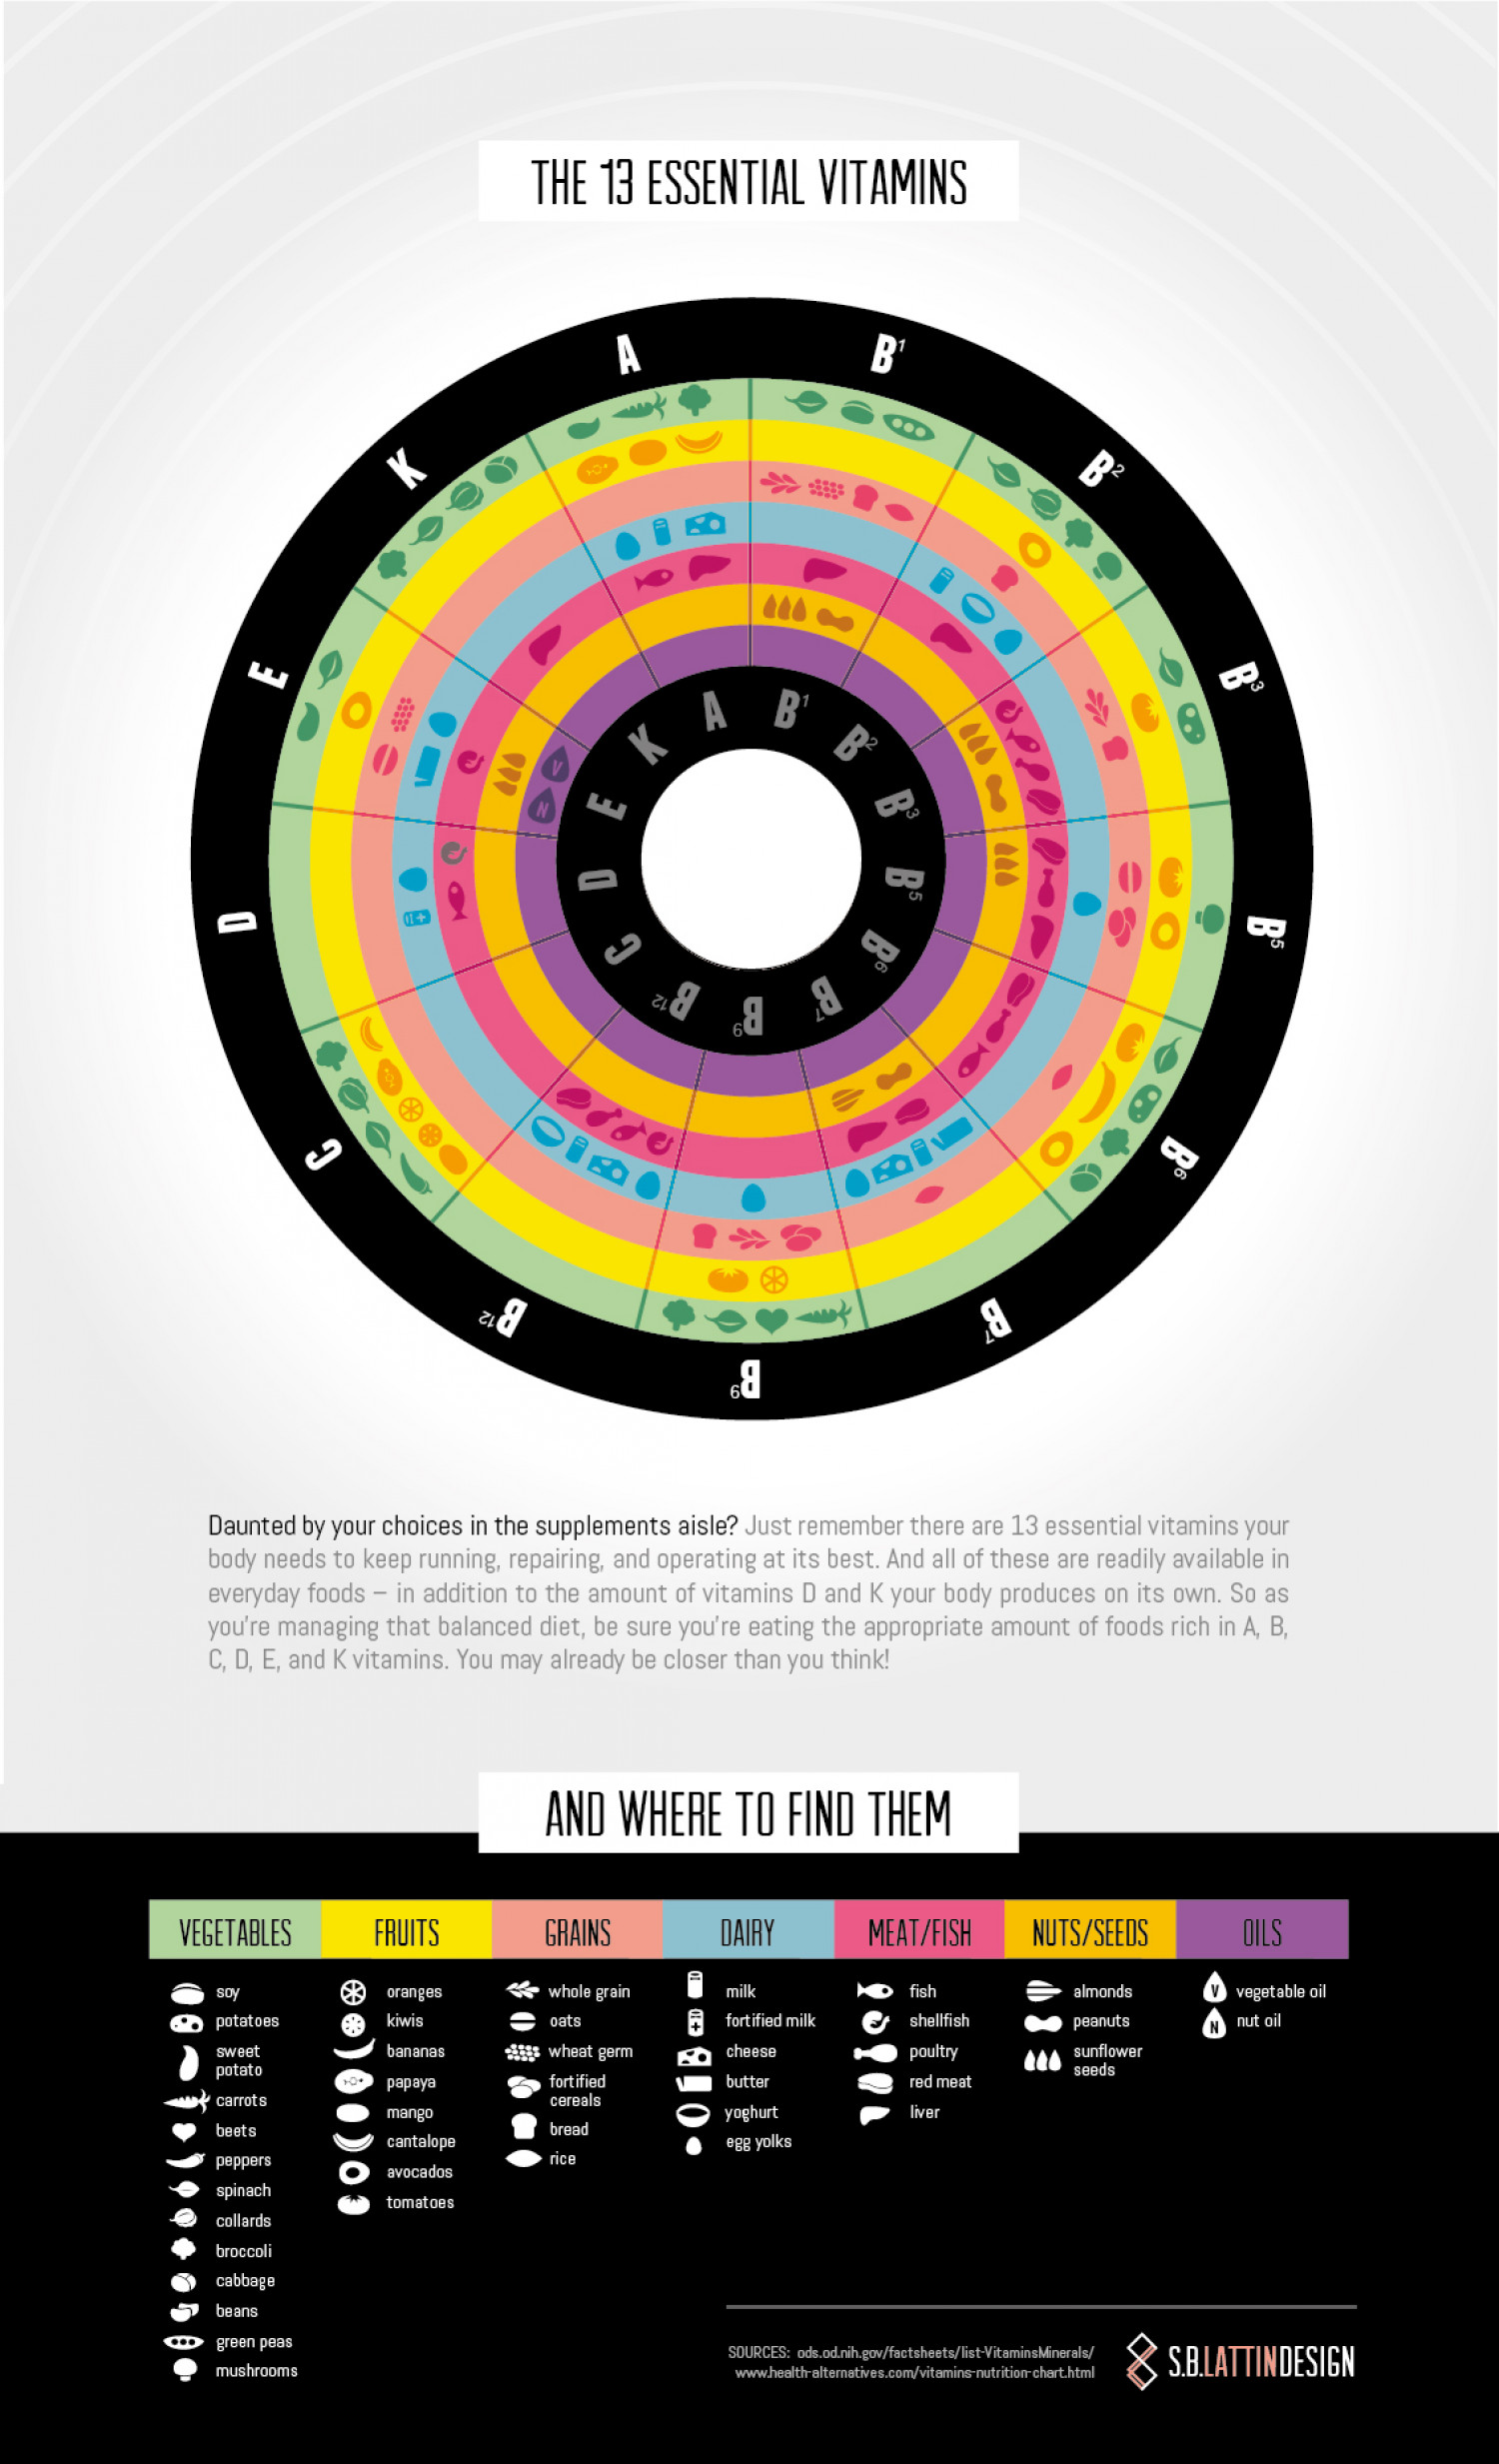 The 13 Essential Vitamins Infographic